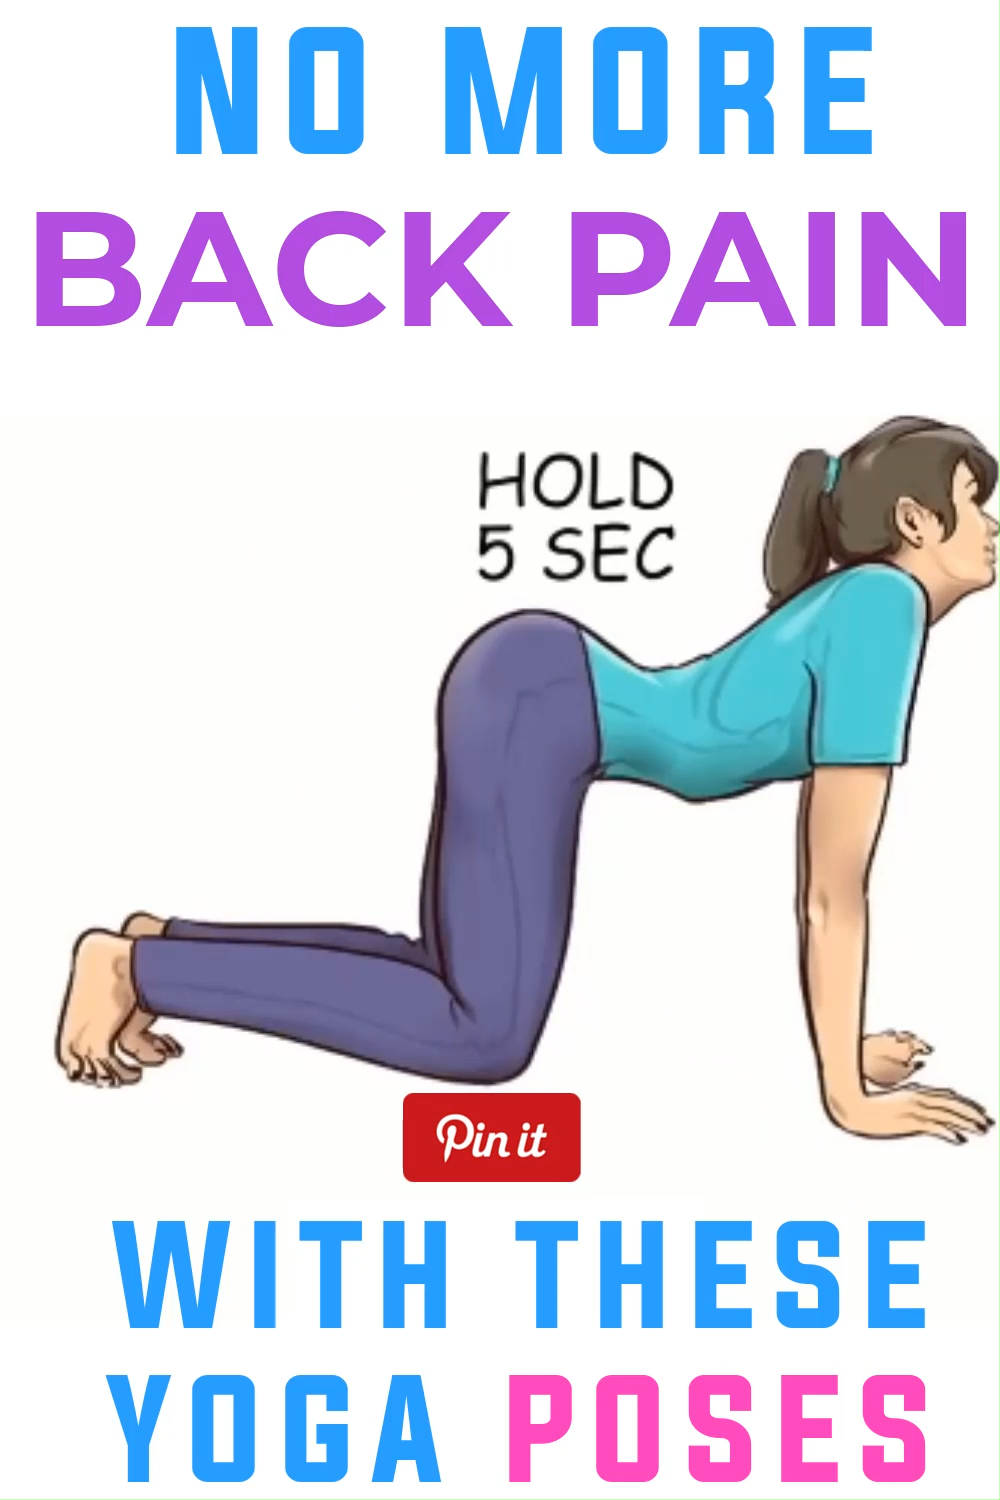 10 Best Yoga Poses for Back Pain According to Experts - [ Best Yoga poses for back pain upper ]